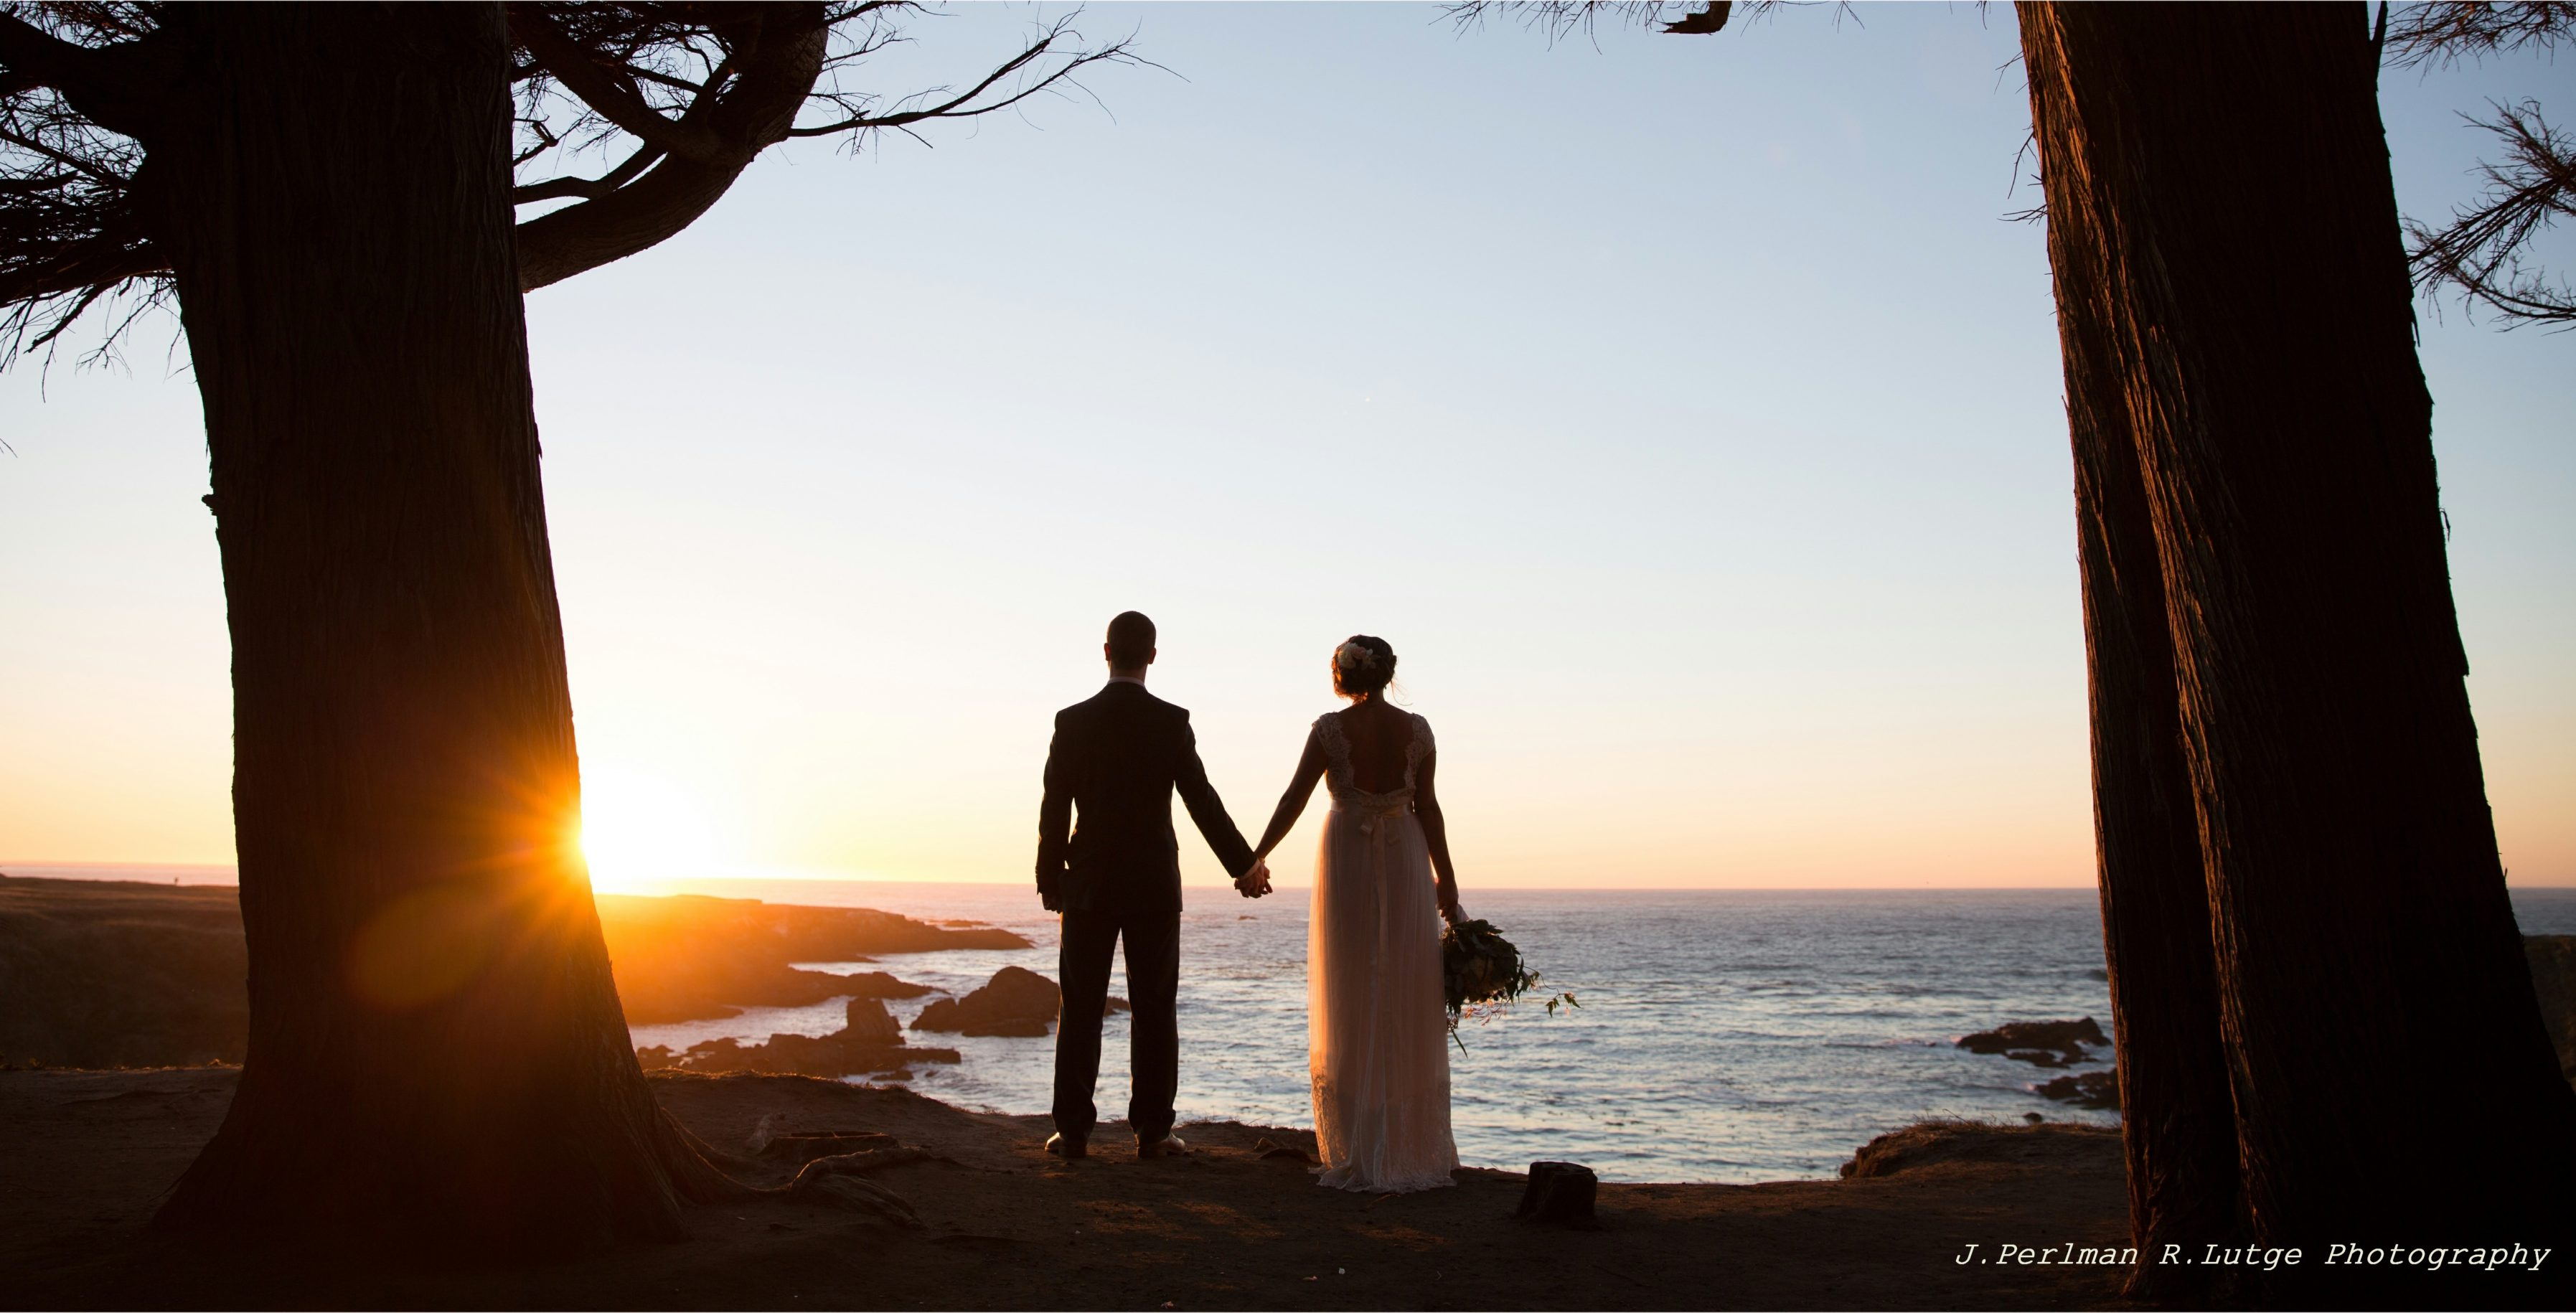 Their Elope Mendocino wedding ceremony completed, Danielle and Christopher watch the sun set from the bluffs.